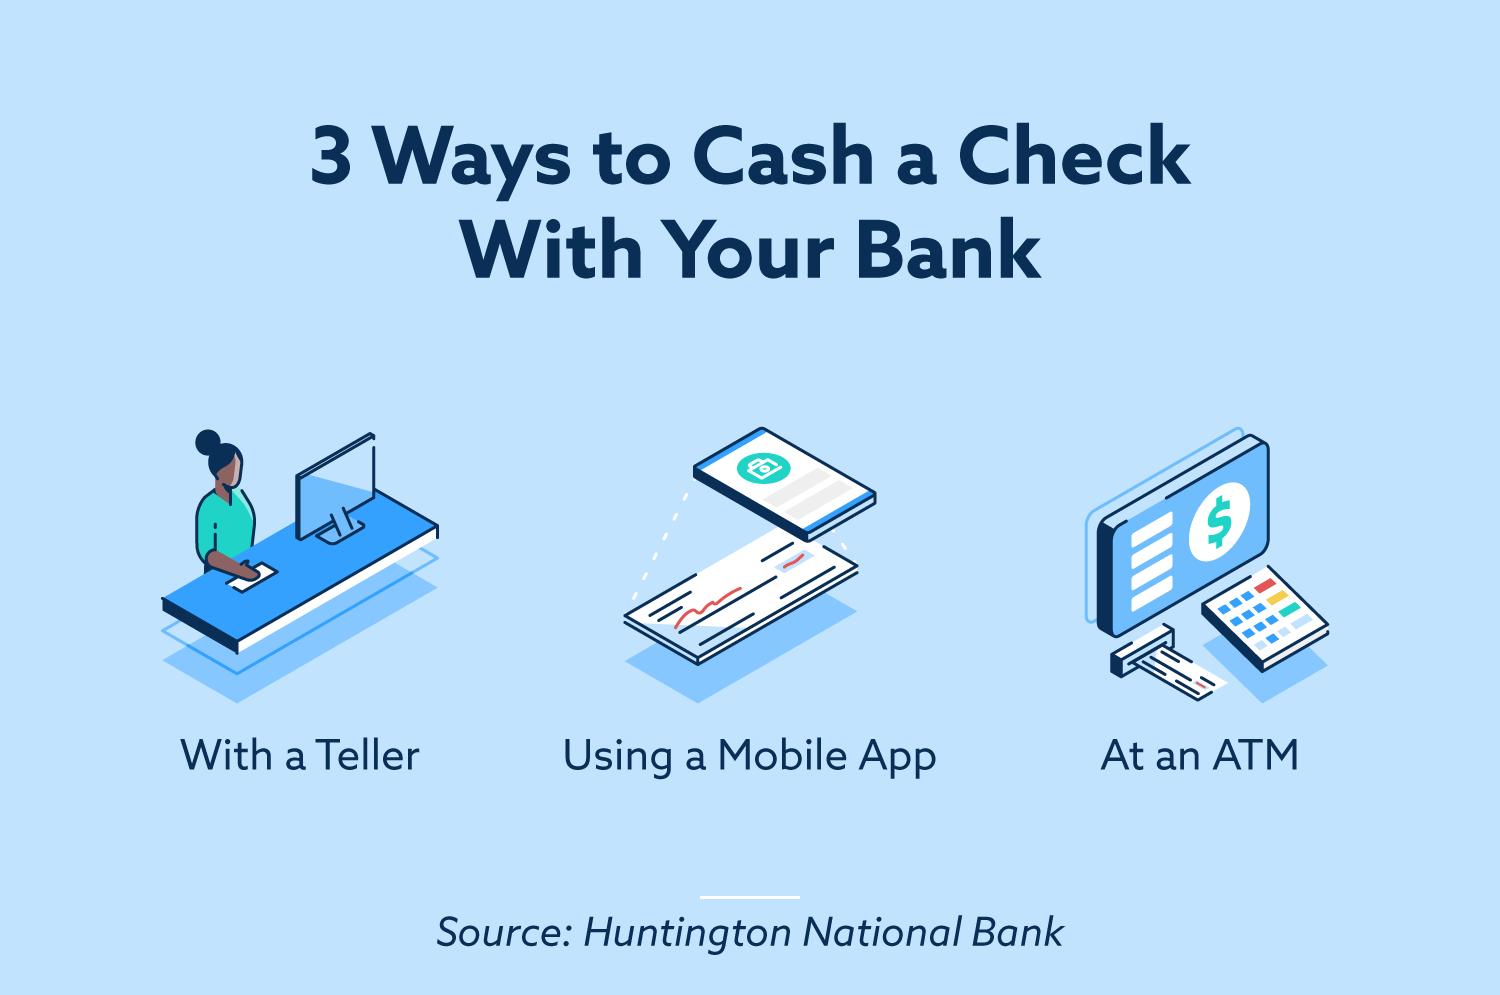 3 ways to cash a check with your bank. With a teller, using a mobile app, at an ATM.